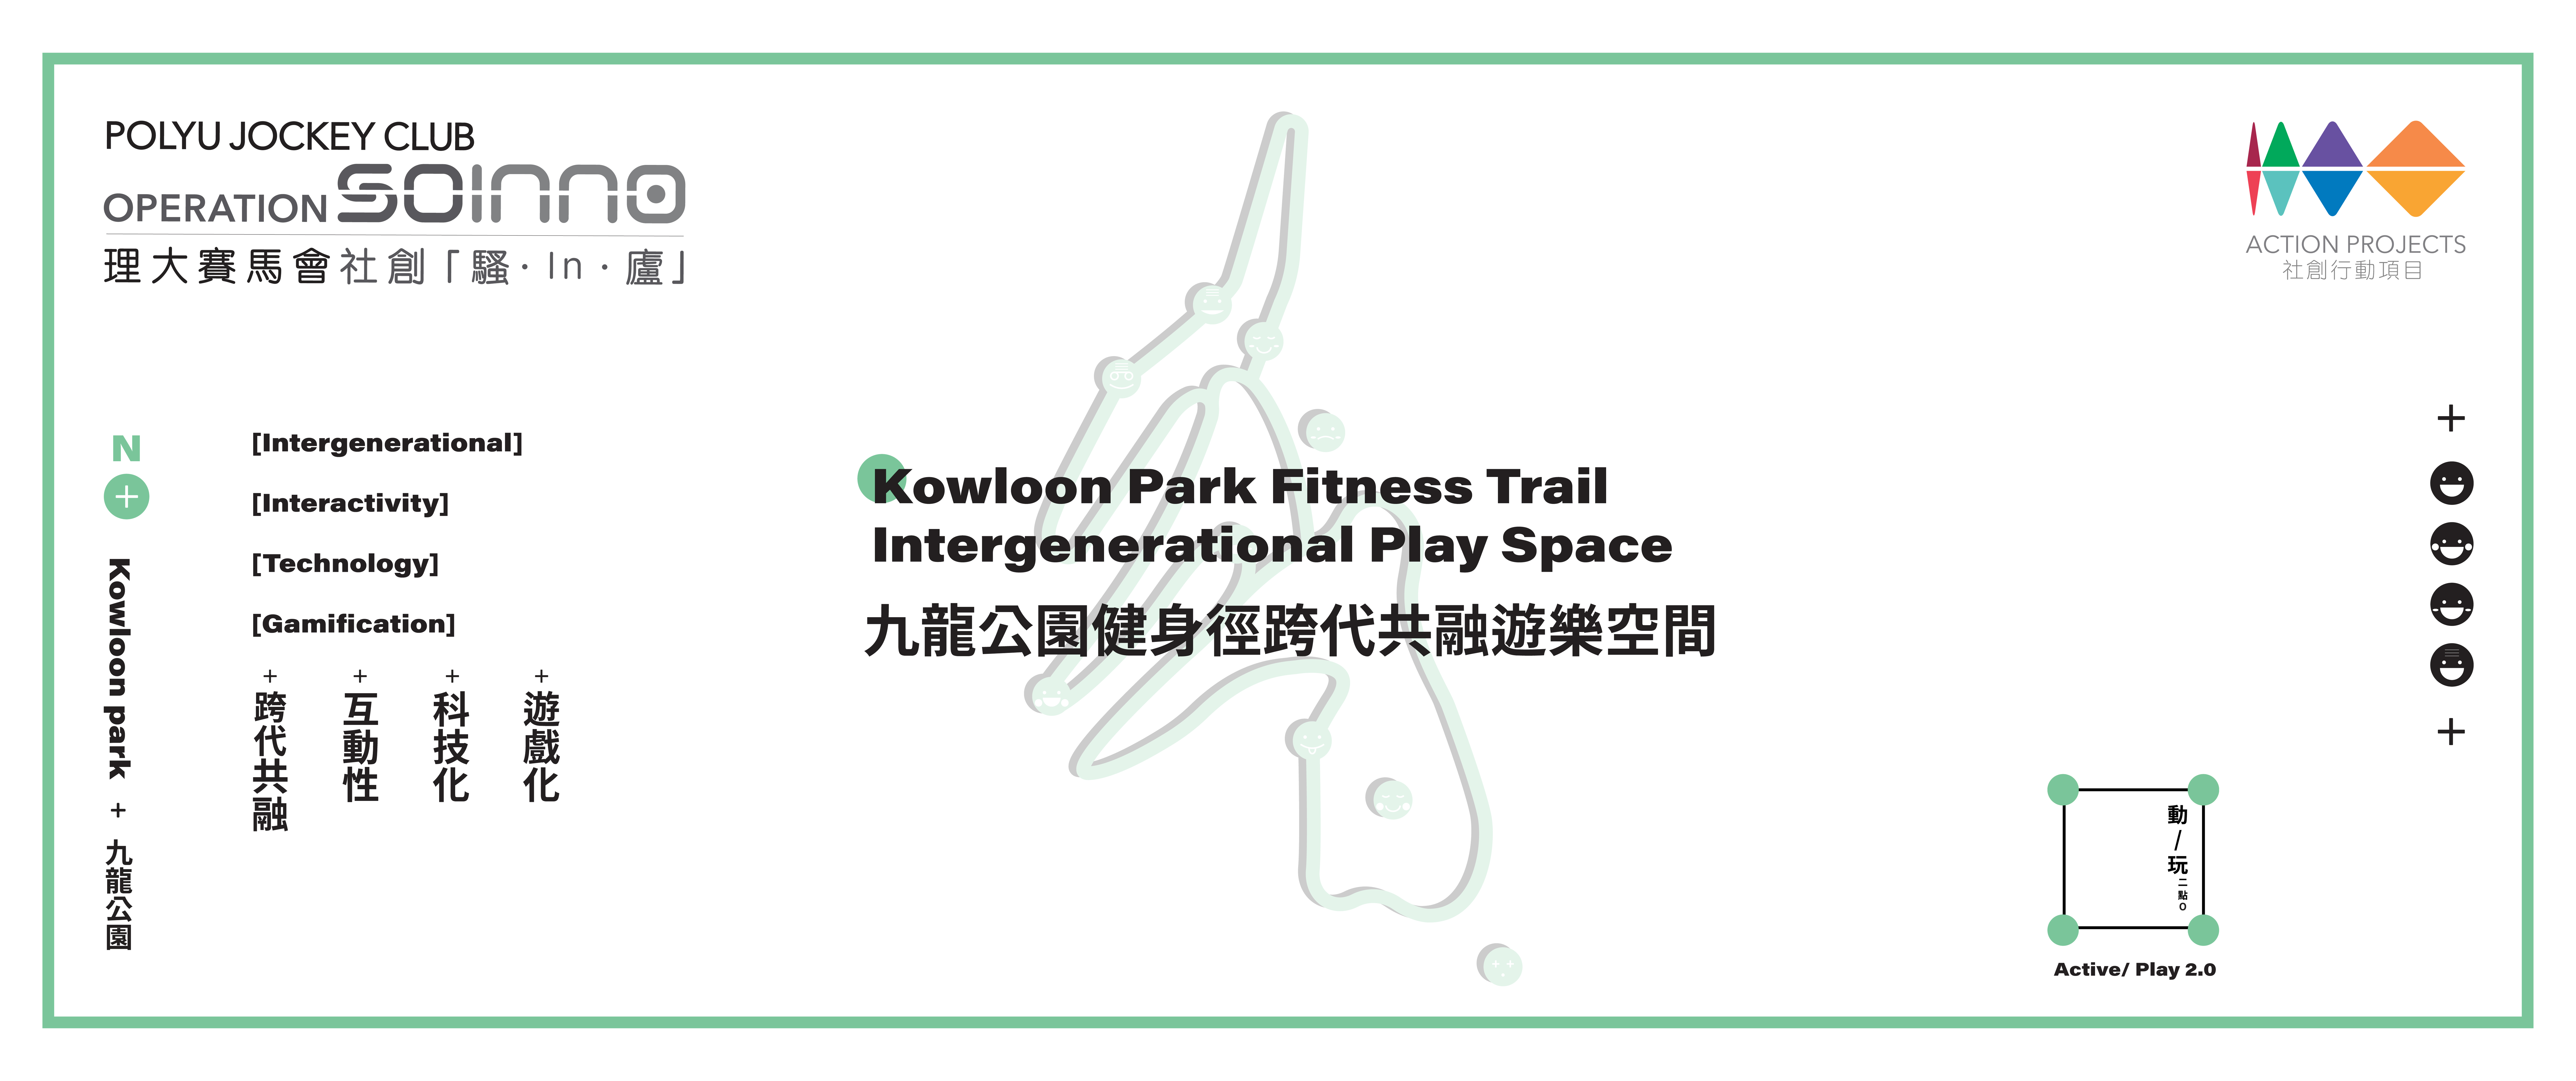 Intergenerational Play Space Kowloon Park Fitness Trail